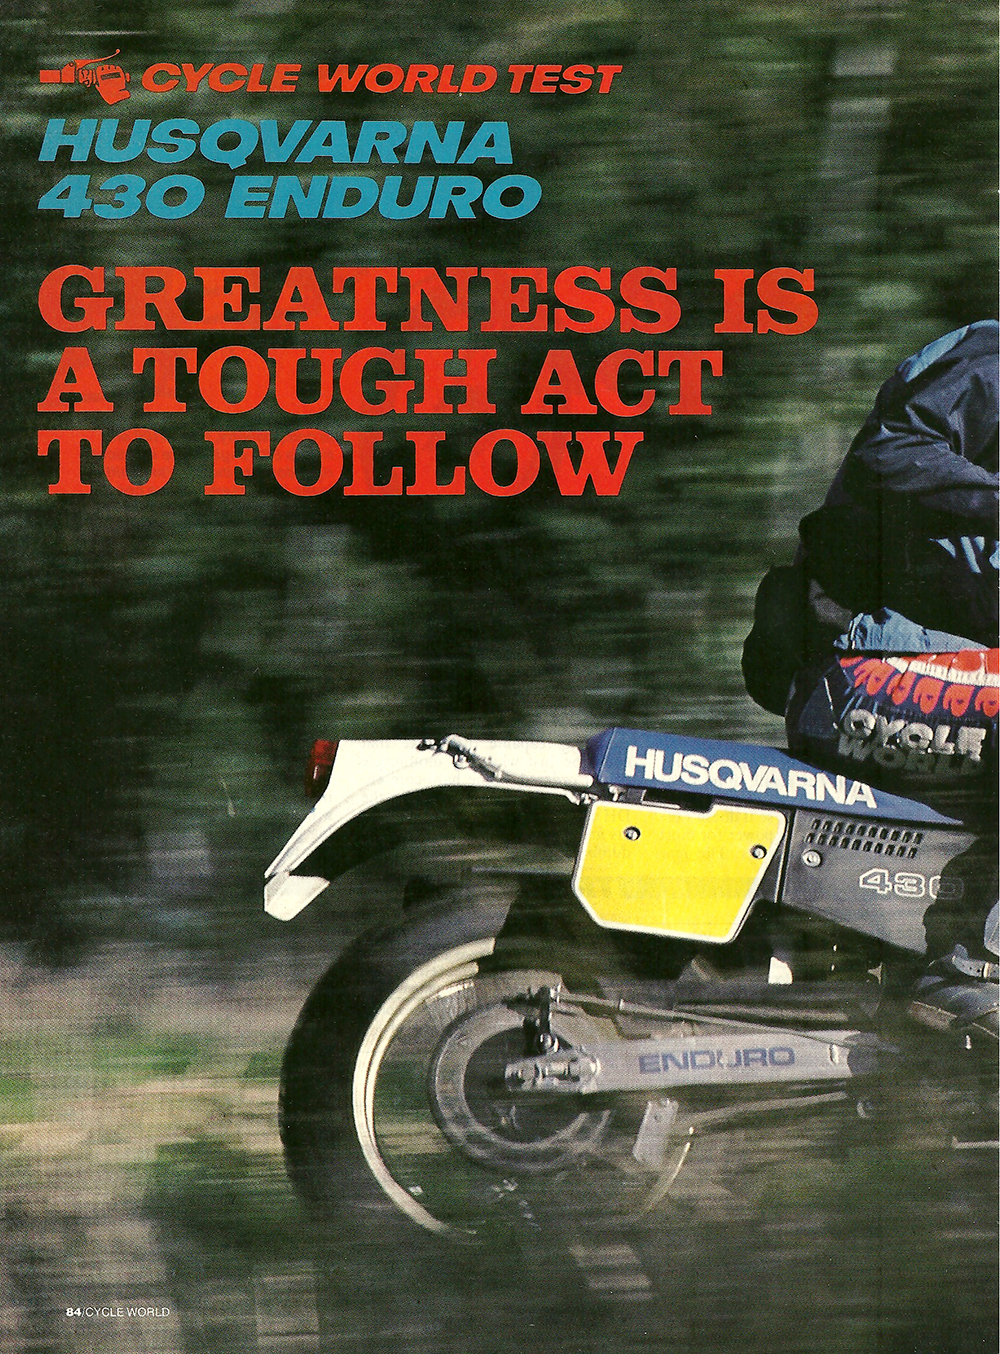 1987 Husqvarna 430 enduro road test 01.jpg